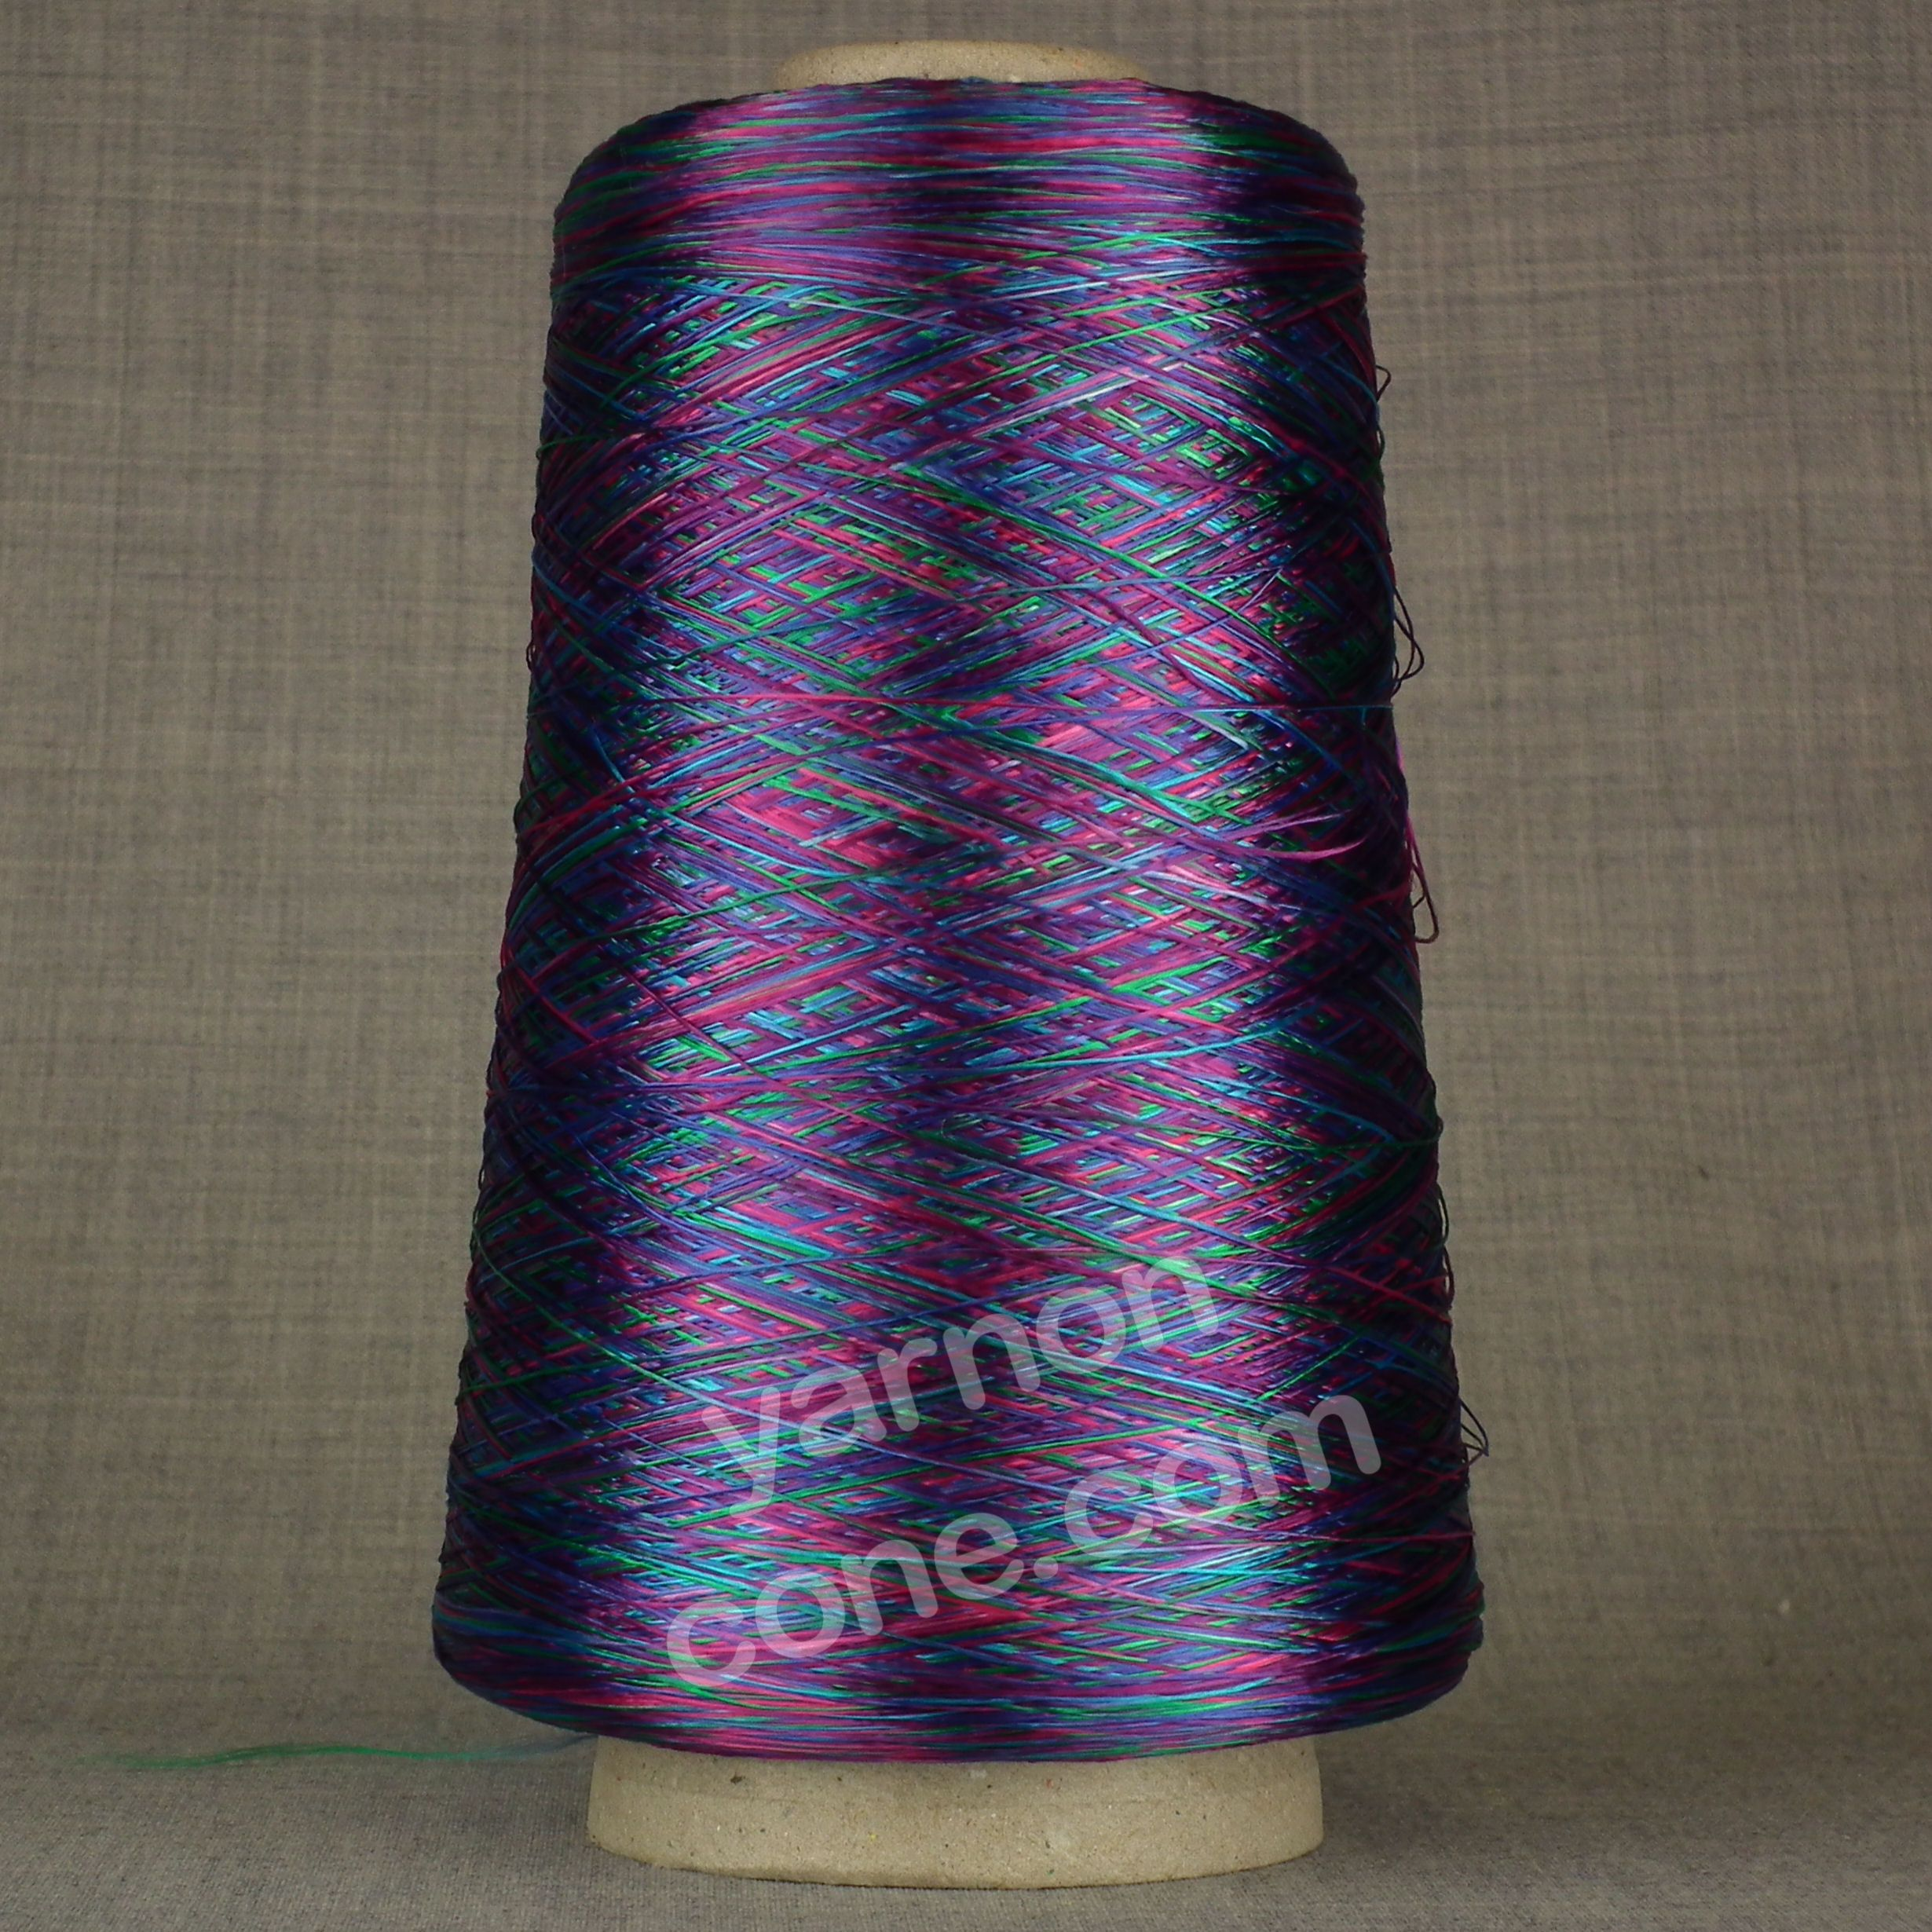 laceweight purple pink space dyed dye viscose rayon yarn on cone hand machine knitting weaving crochet